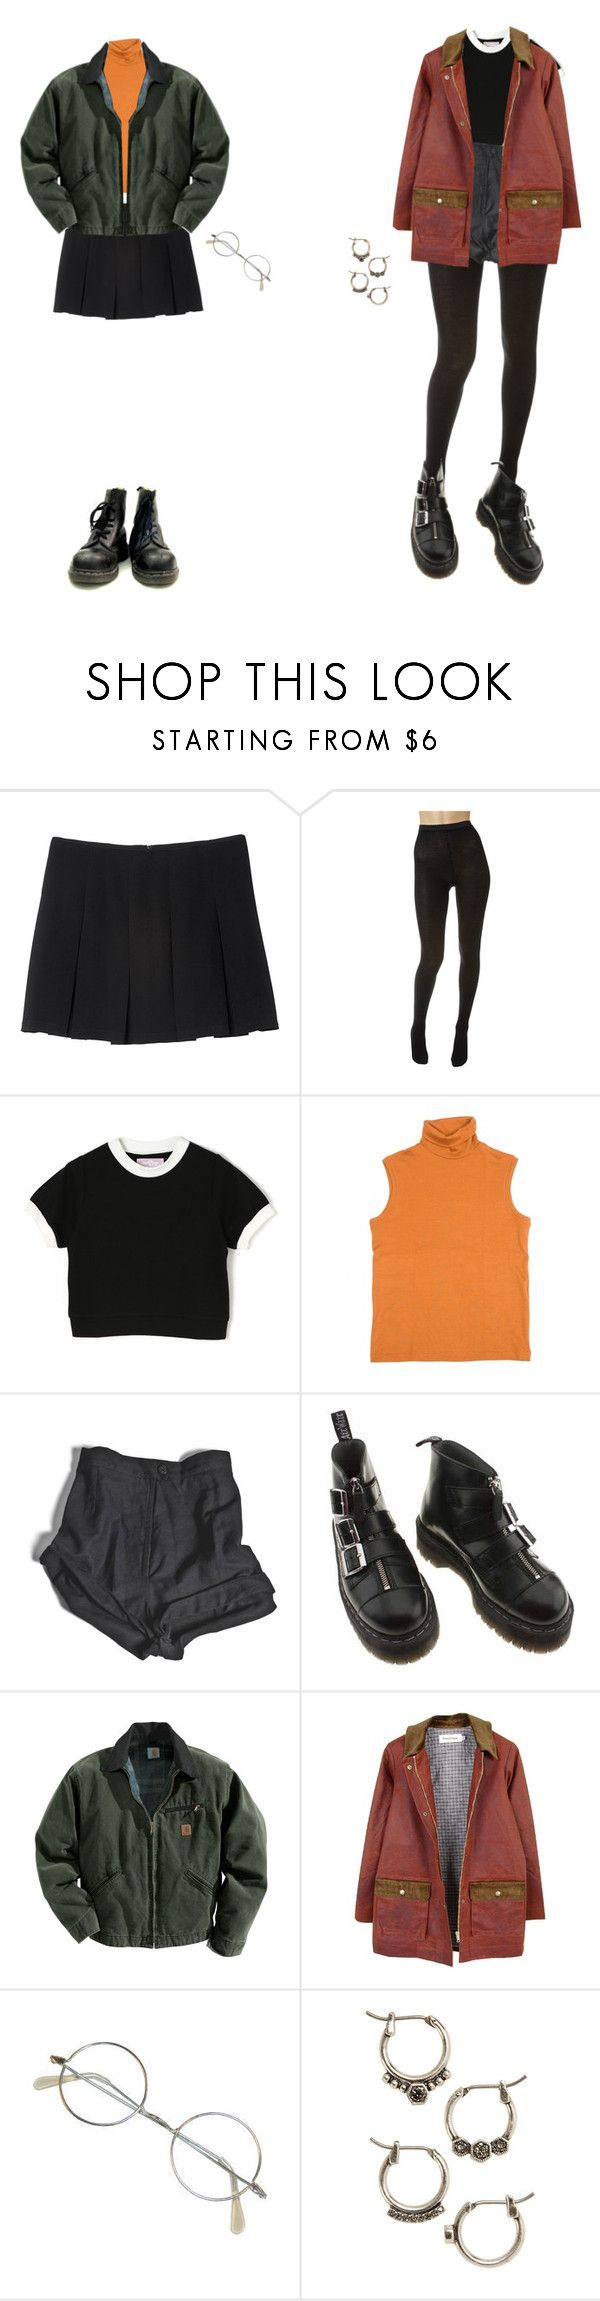 """daria and jane inspired"" by luisaxx ❤ liked on Polyvore featuring Monki, Wolford, Hermès, My Mum Made It, Dr. Martens, Carhartt, FrenchTrotters, Masquerade and Luv Aj"